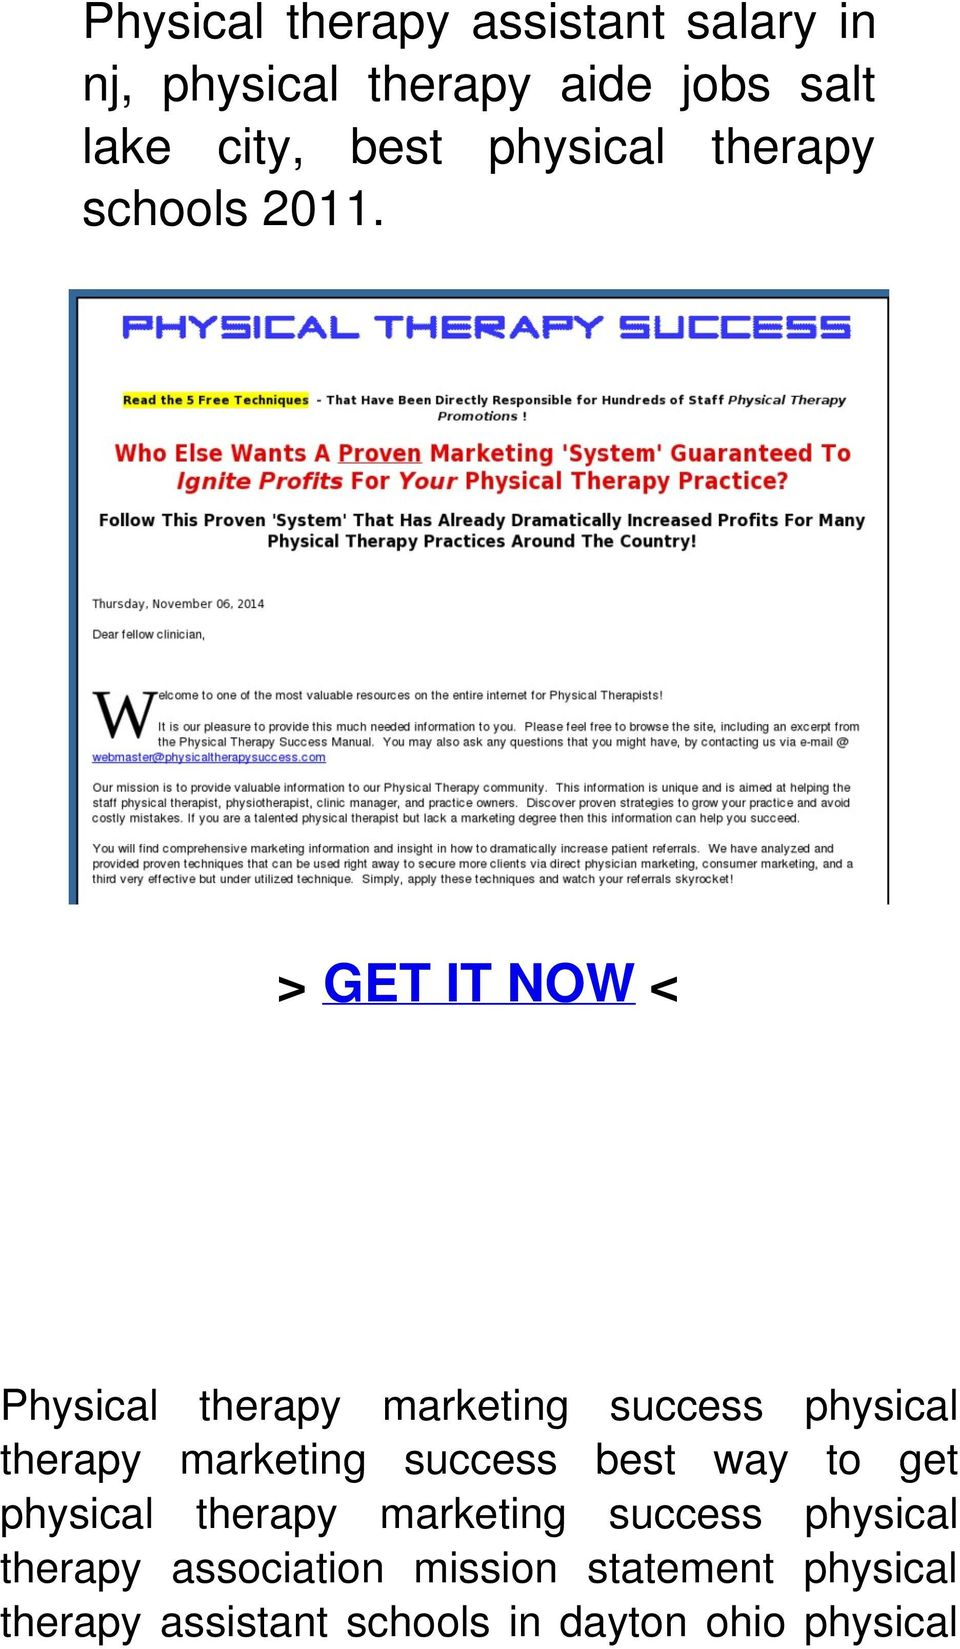 > GET IT NOW < Physical therapy marketing success physical therapy marketing success best